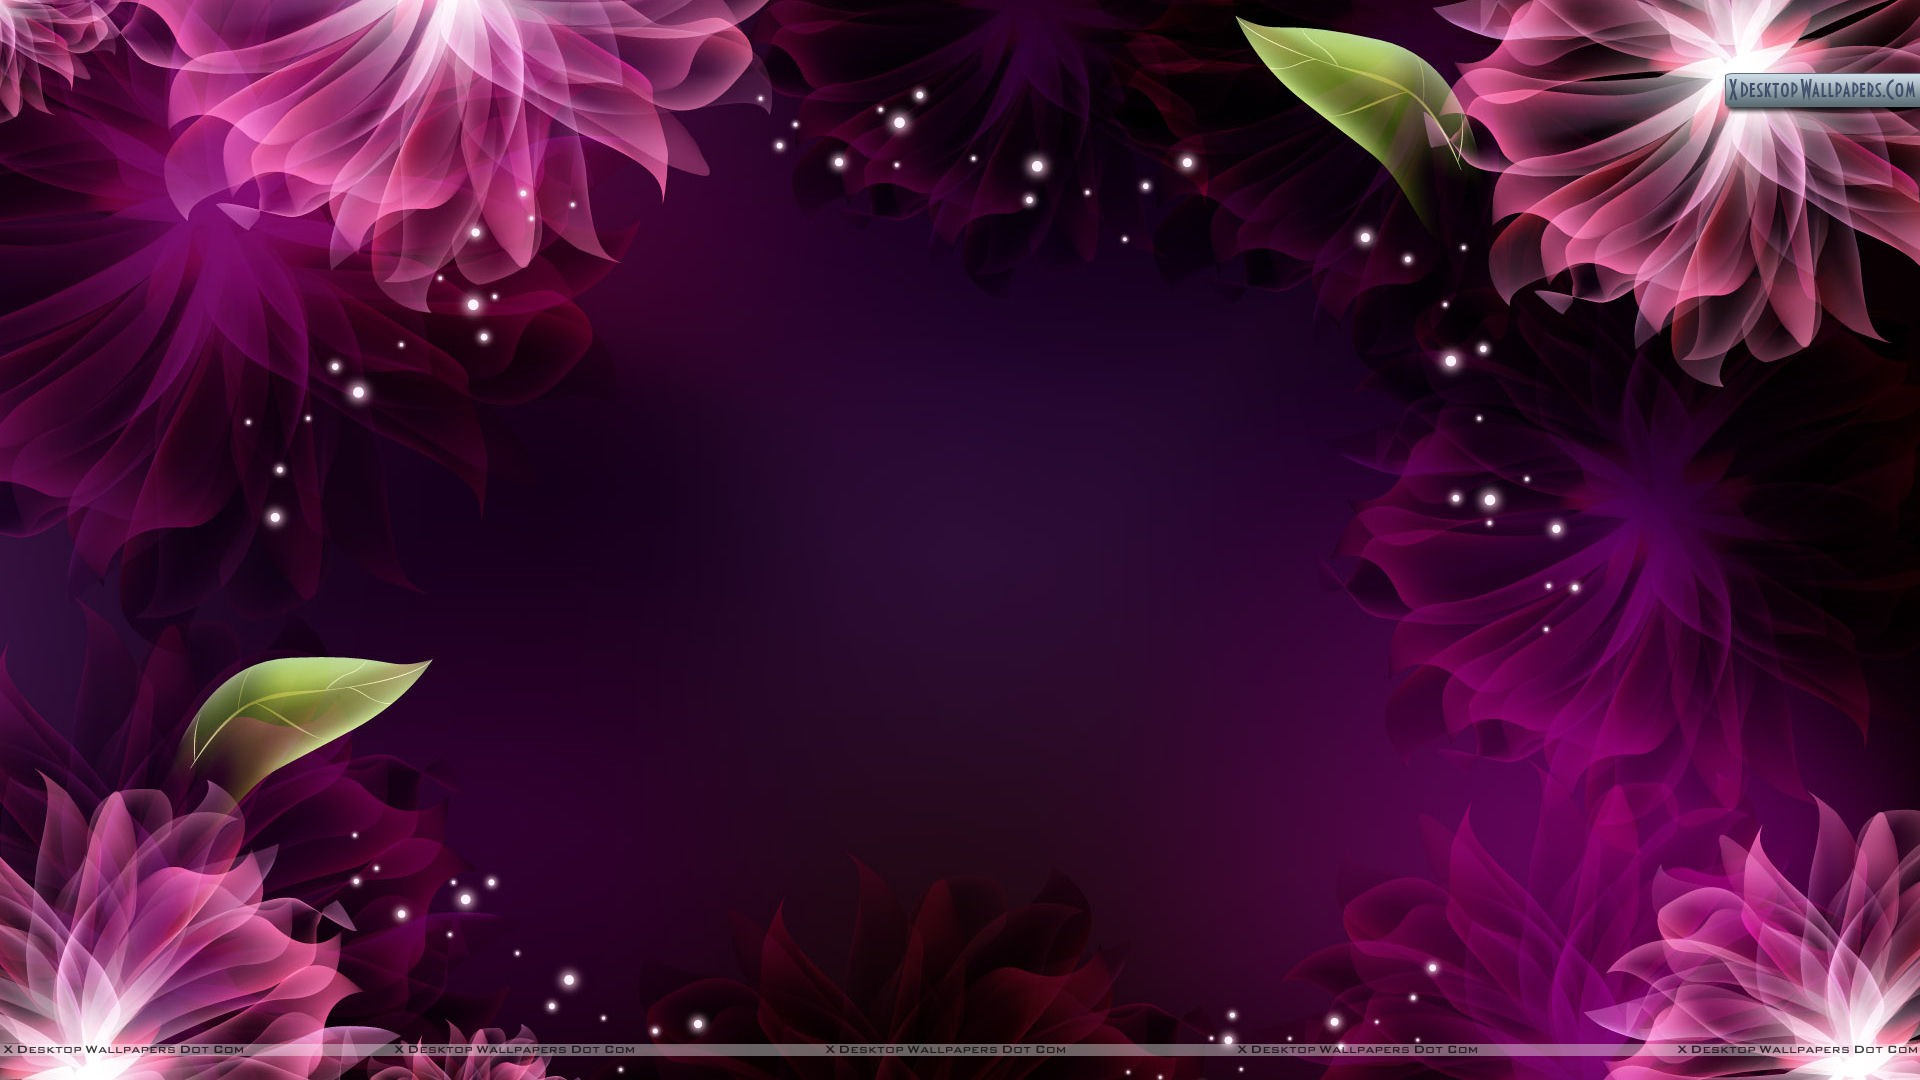 Colorful Abstract Backgrounds 2953 Hd Wallpapers in Abstract 1920x1080